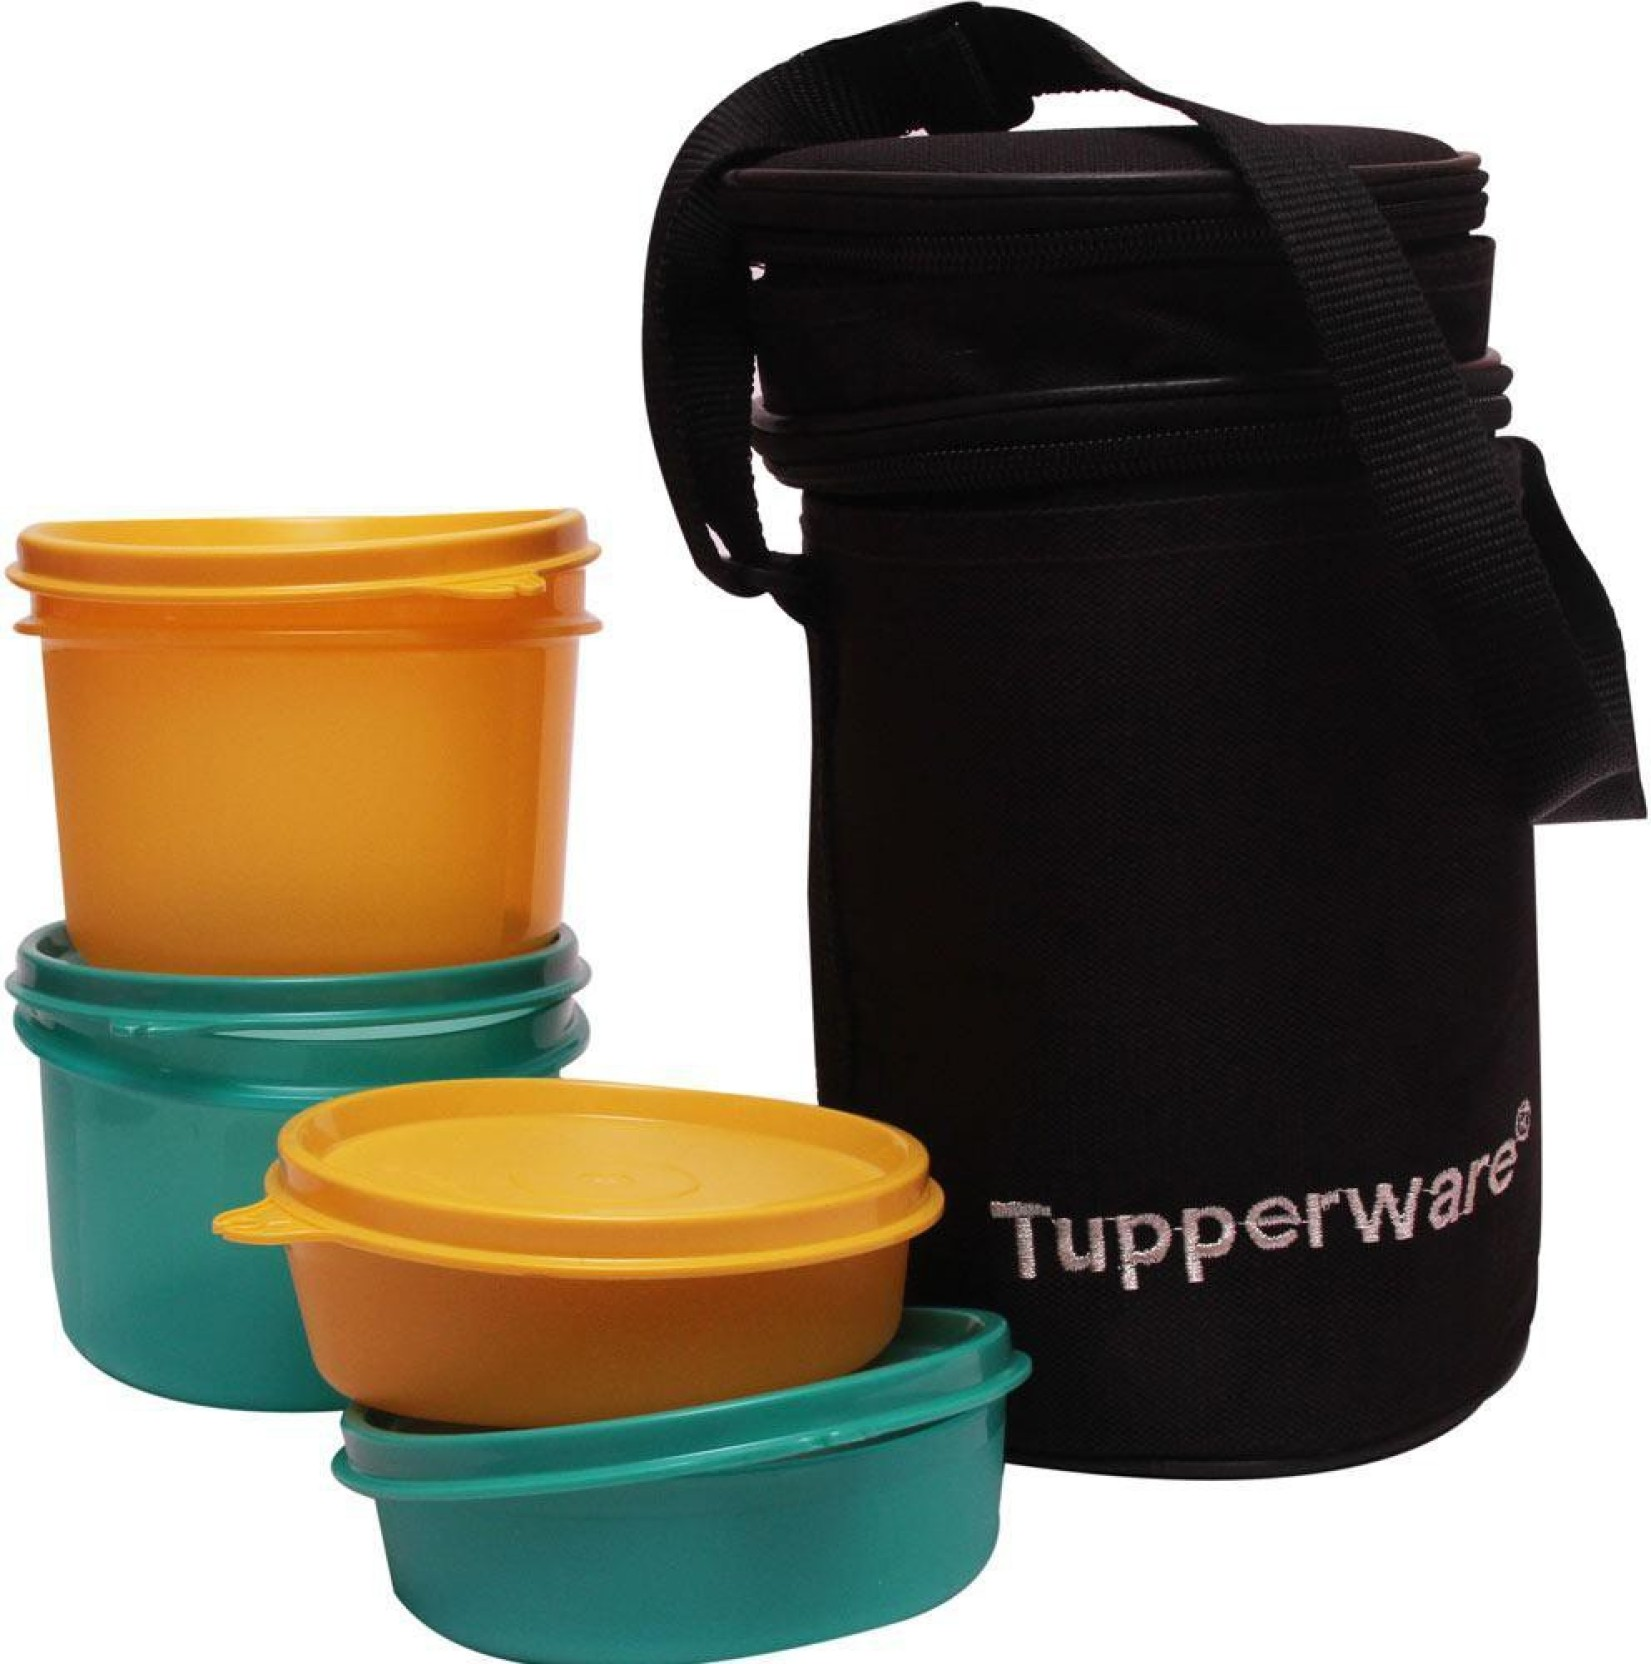 tupperware executive 4 containers lunch box. Black Bedroom Furniture Sets. Home Design Ideas